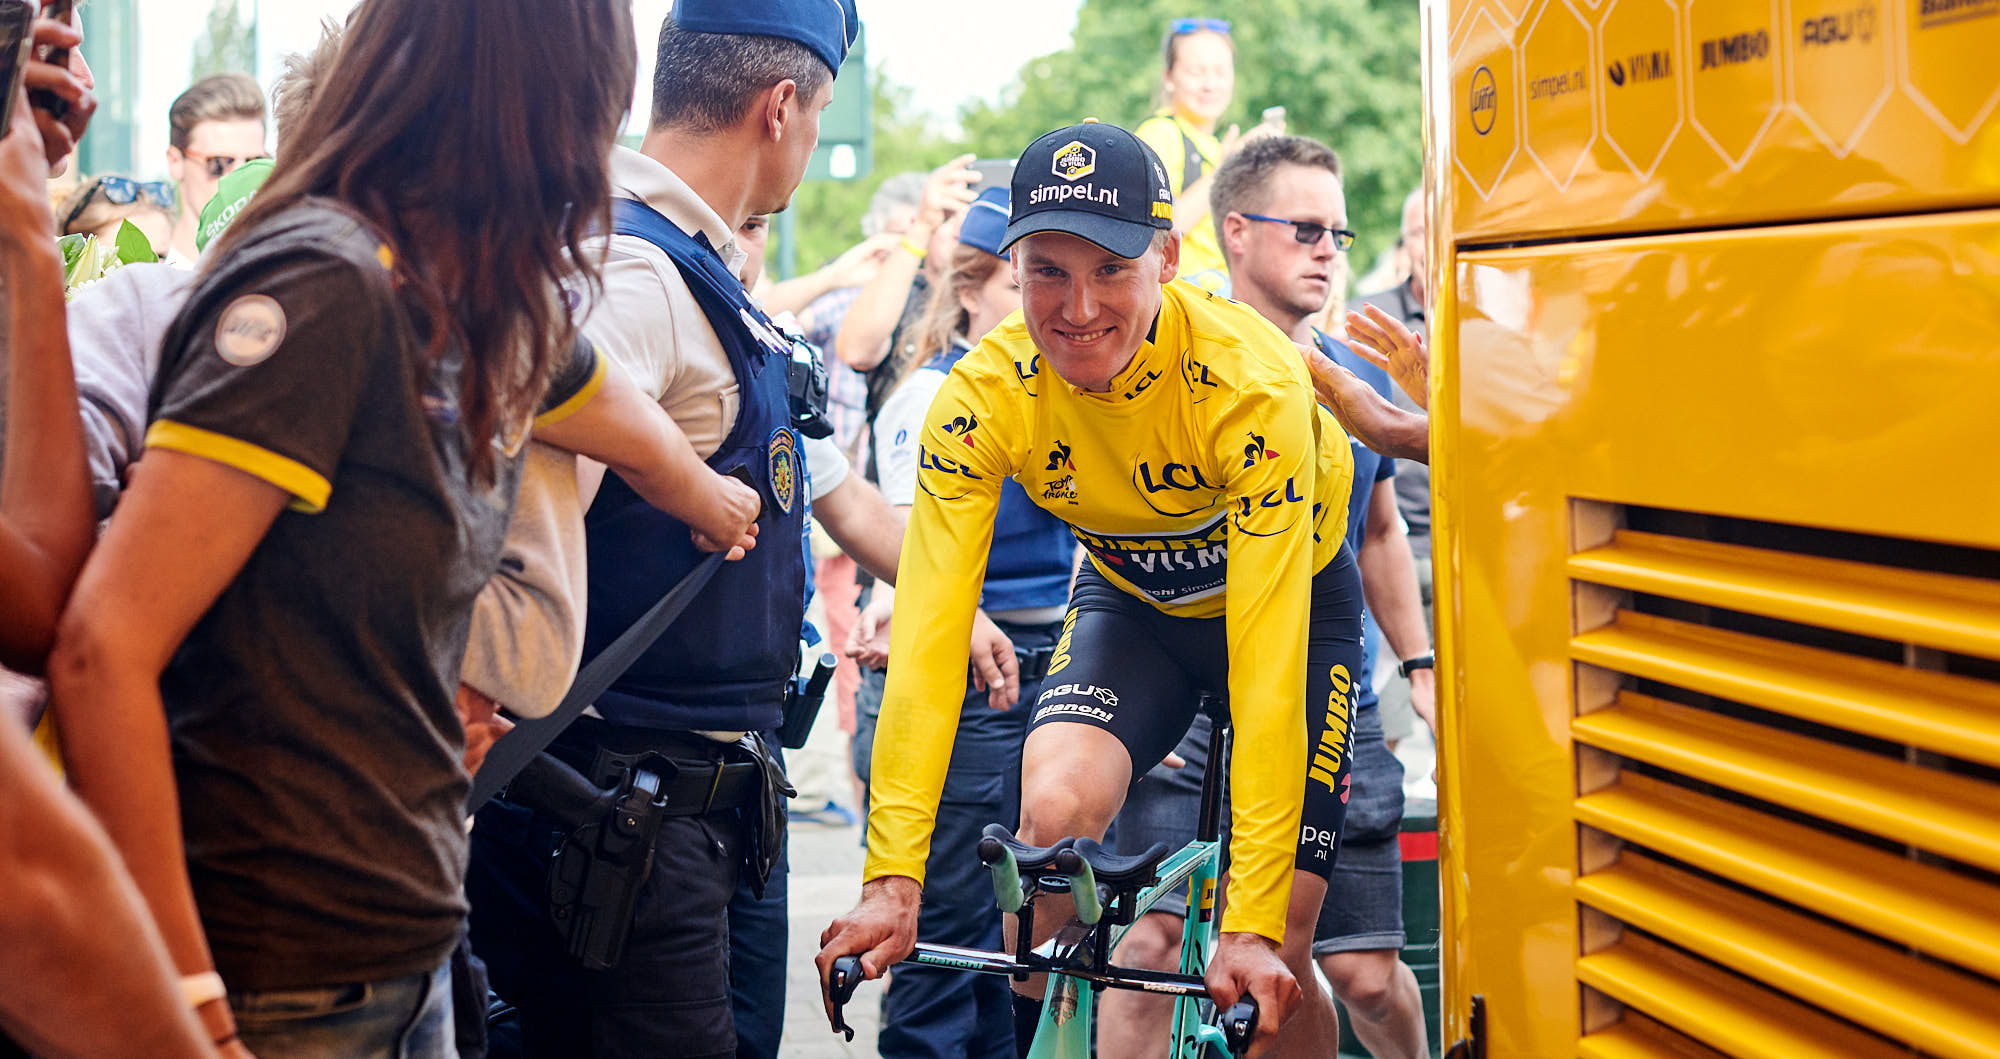 Mike Teunissen arriving at the team Jumbo-Visma bus after the team time trial in the 2019 Tour de France